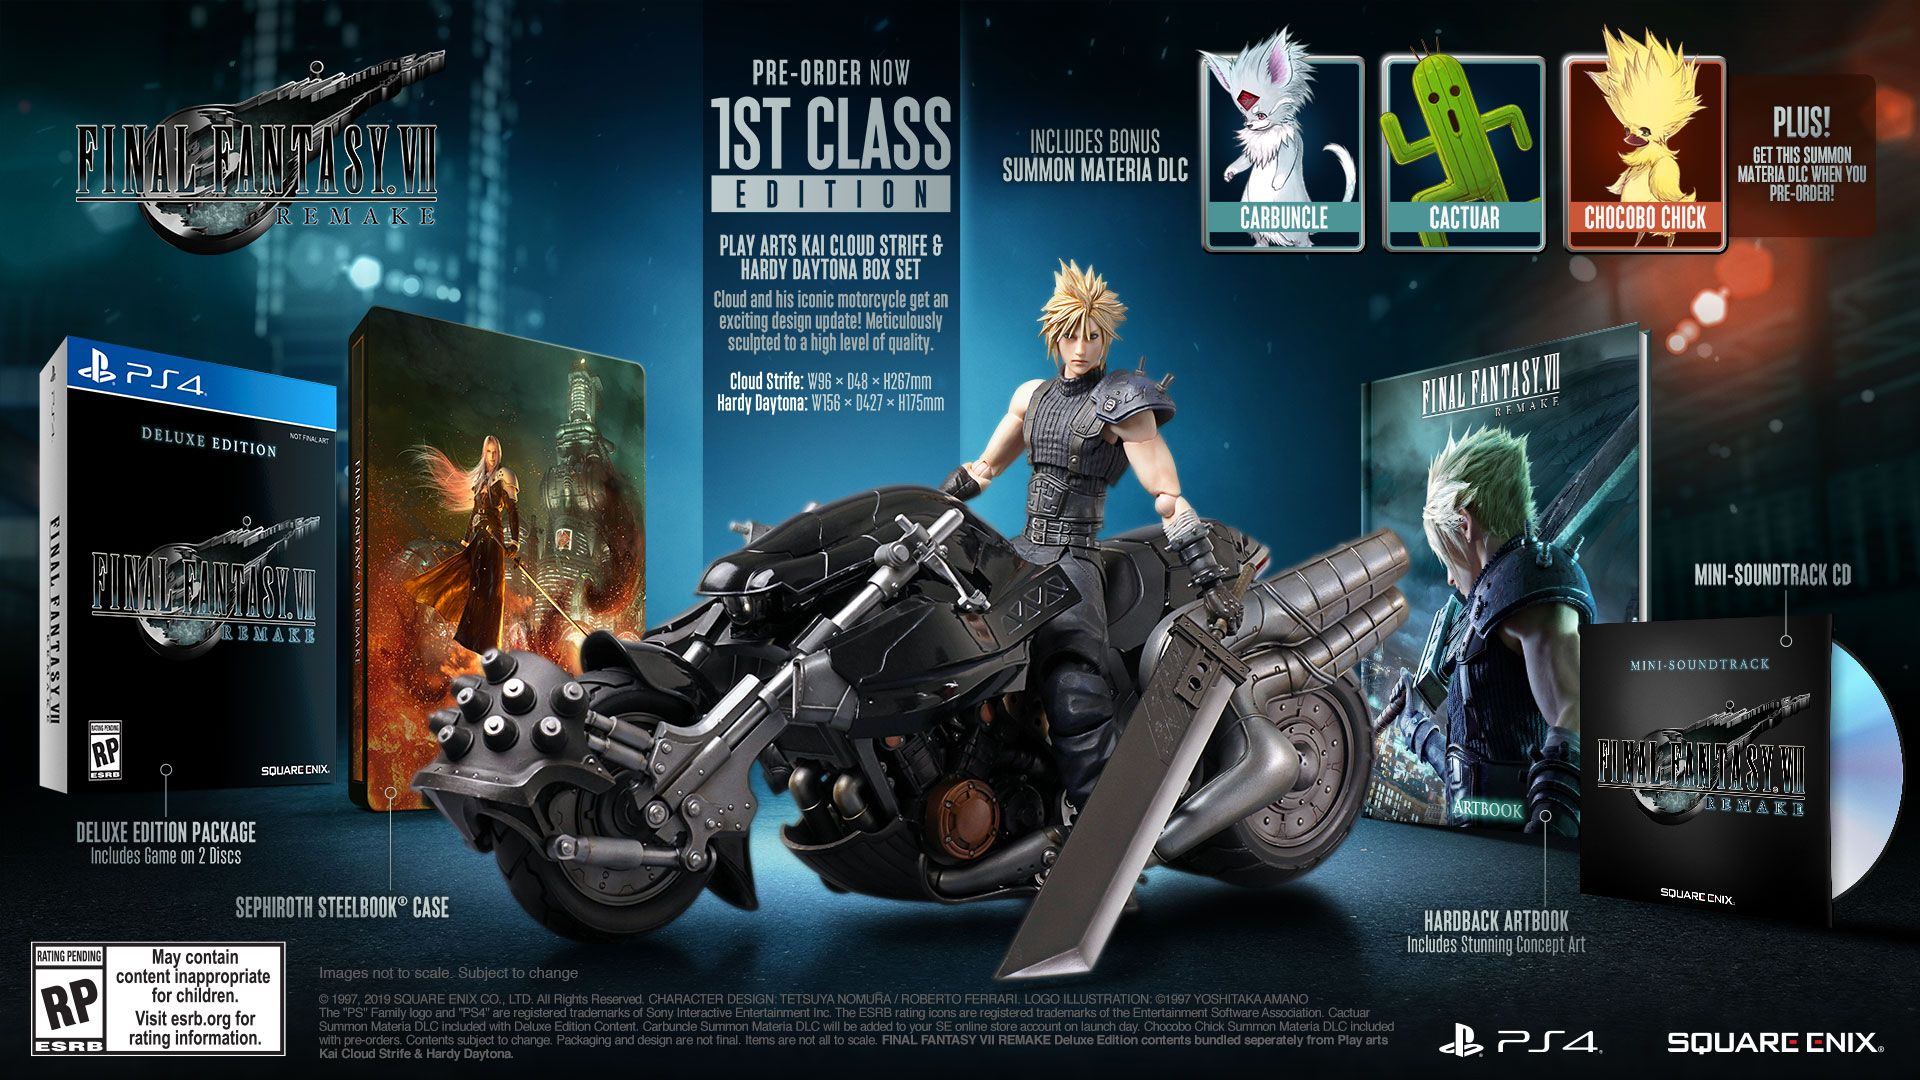 FINAL FANTASY® VII REMAKE - 1ST CLASS EDITION [PS4] | Square Enix Store